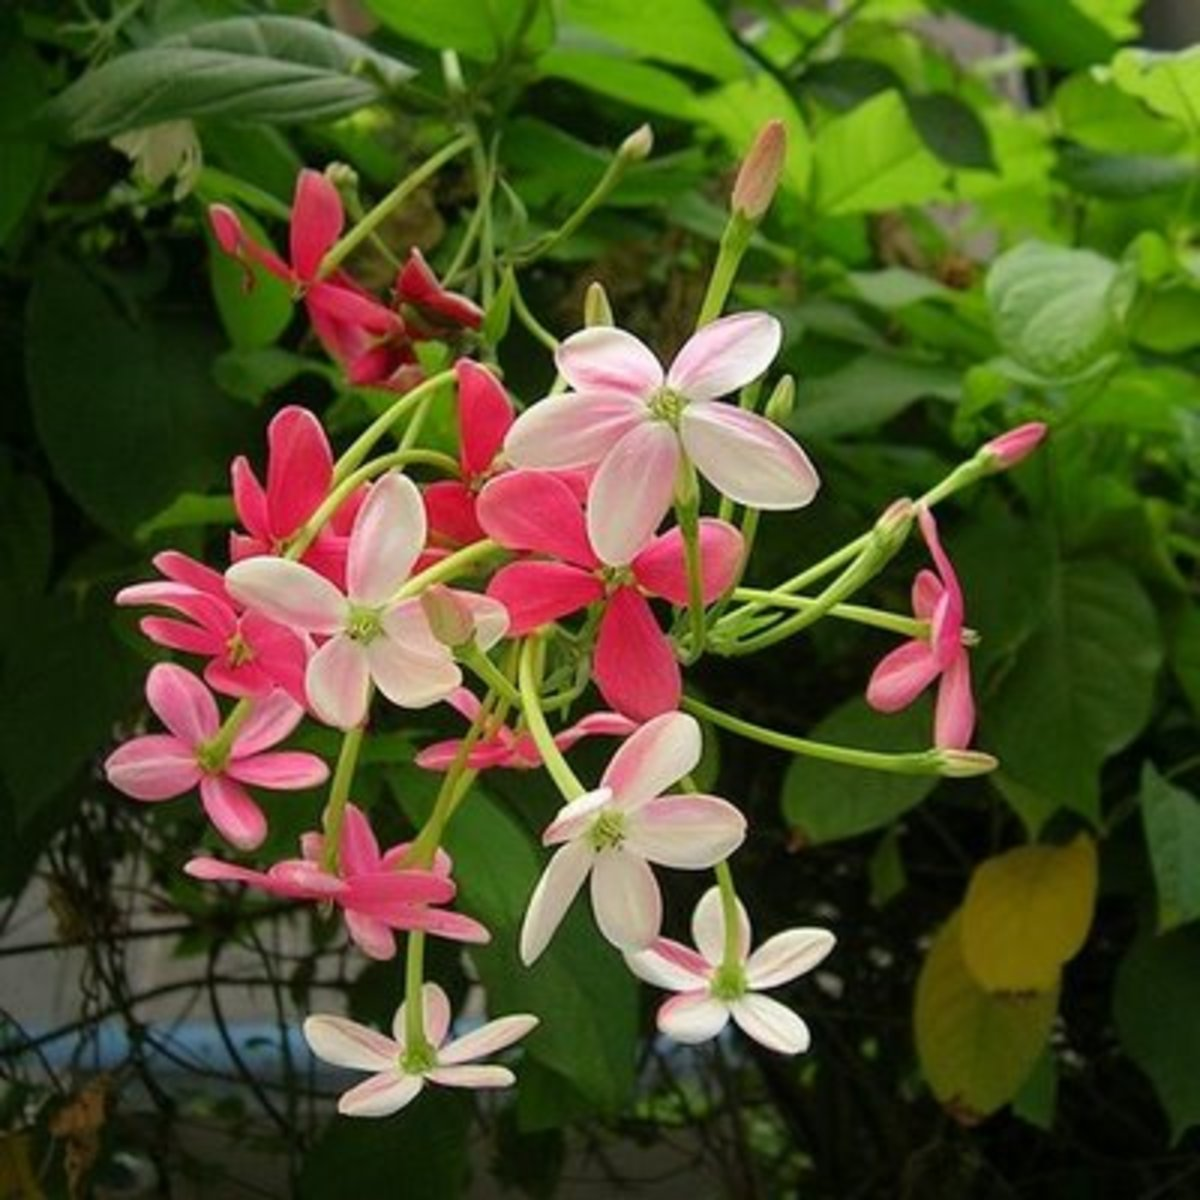 The cluster of blooms on the Rangoon Creeper  has varying colors of red, pink and white.